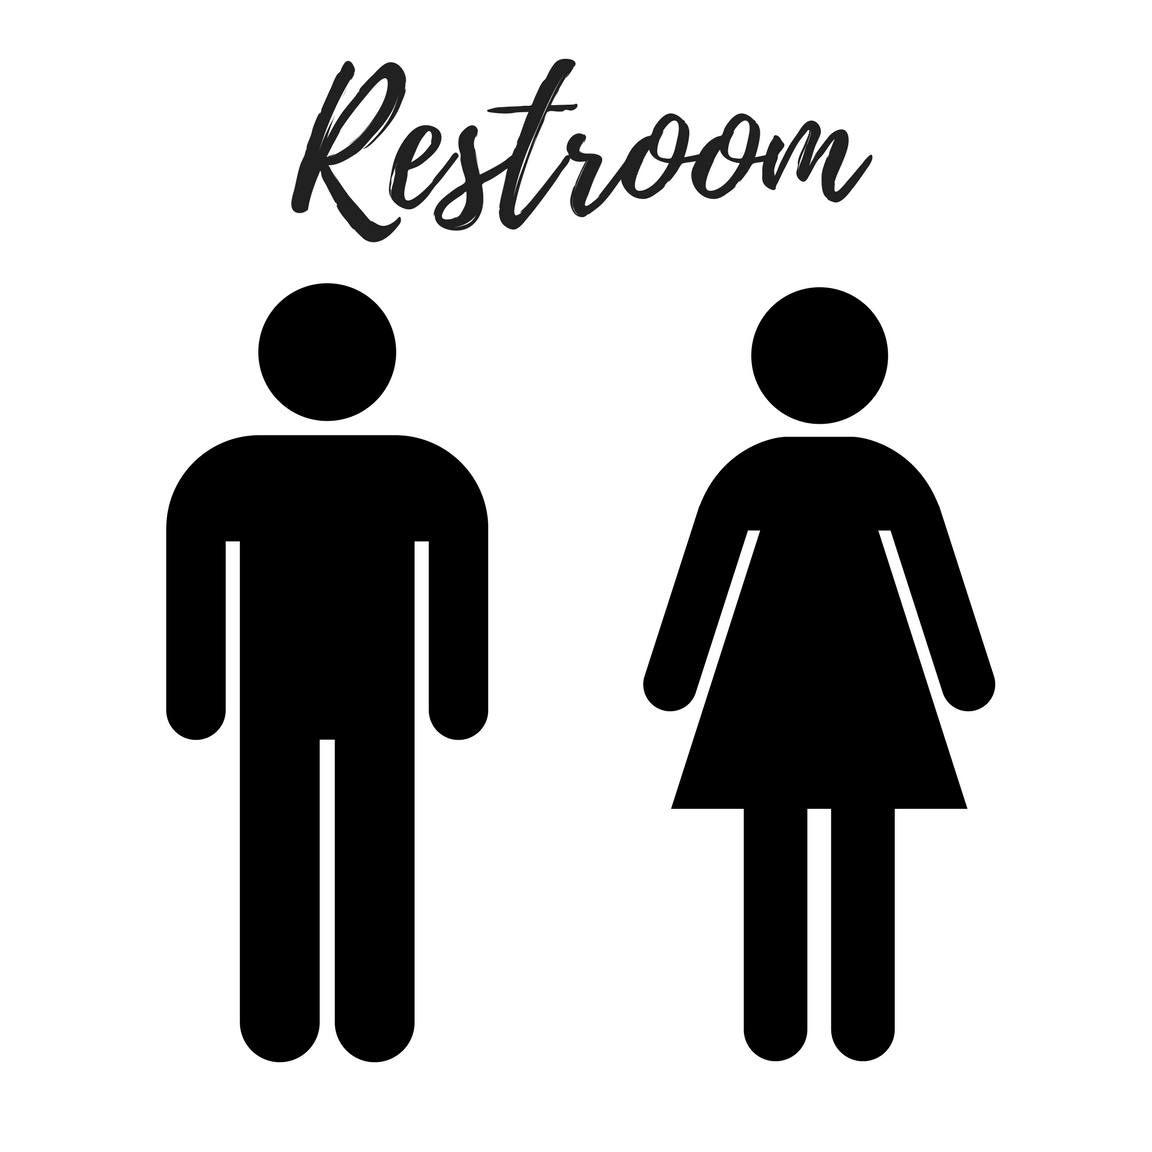 Nerdy image for printable bathroom sign